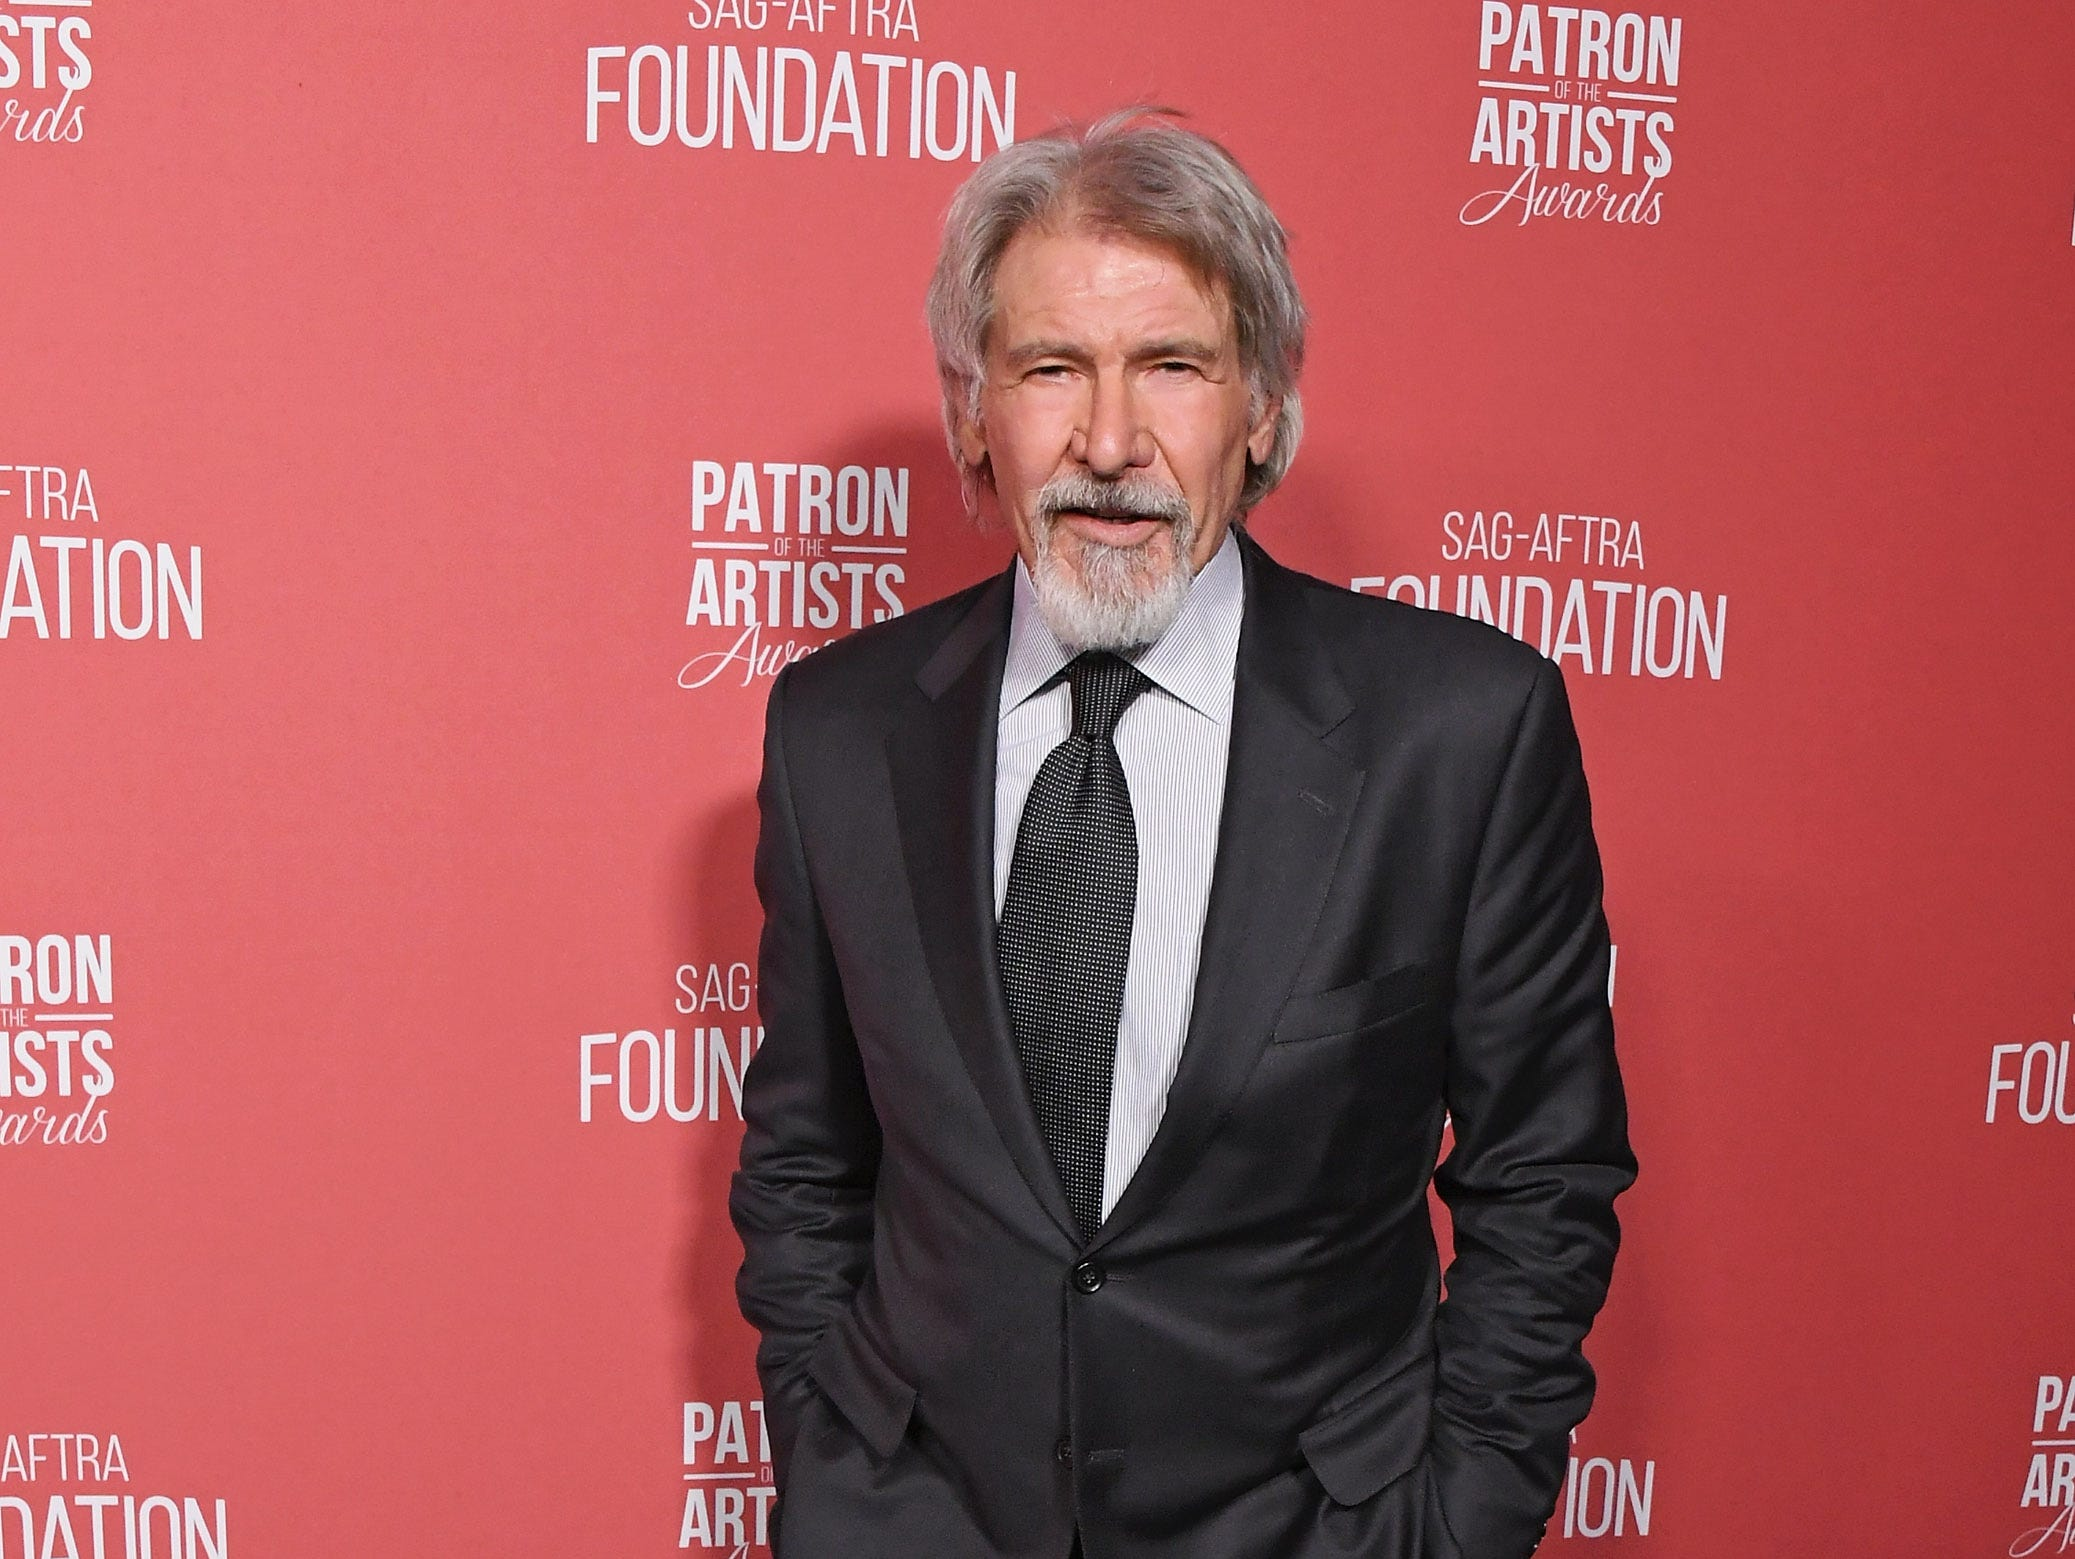 BEVERLY HILLS, CA - NOVEMBER 08:  Harrison Ford attends SAG-AFTRA Foundation's 3rd Annual Patron Of The Artists Awards at Wallis Annenberg Center for the Performing Arts on November 8, 2018 in Beverly Hills, California.  (Photo by Jon Kopaloff/FilmMagic) ORG XMIT: 775233471 ORIG FILE ID: 1059469768